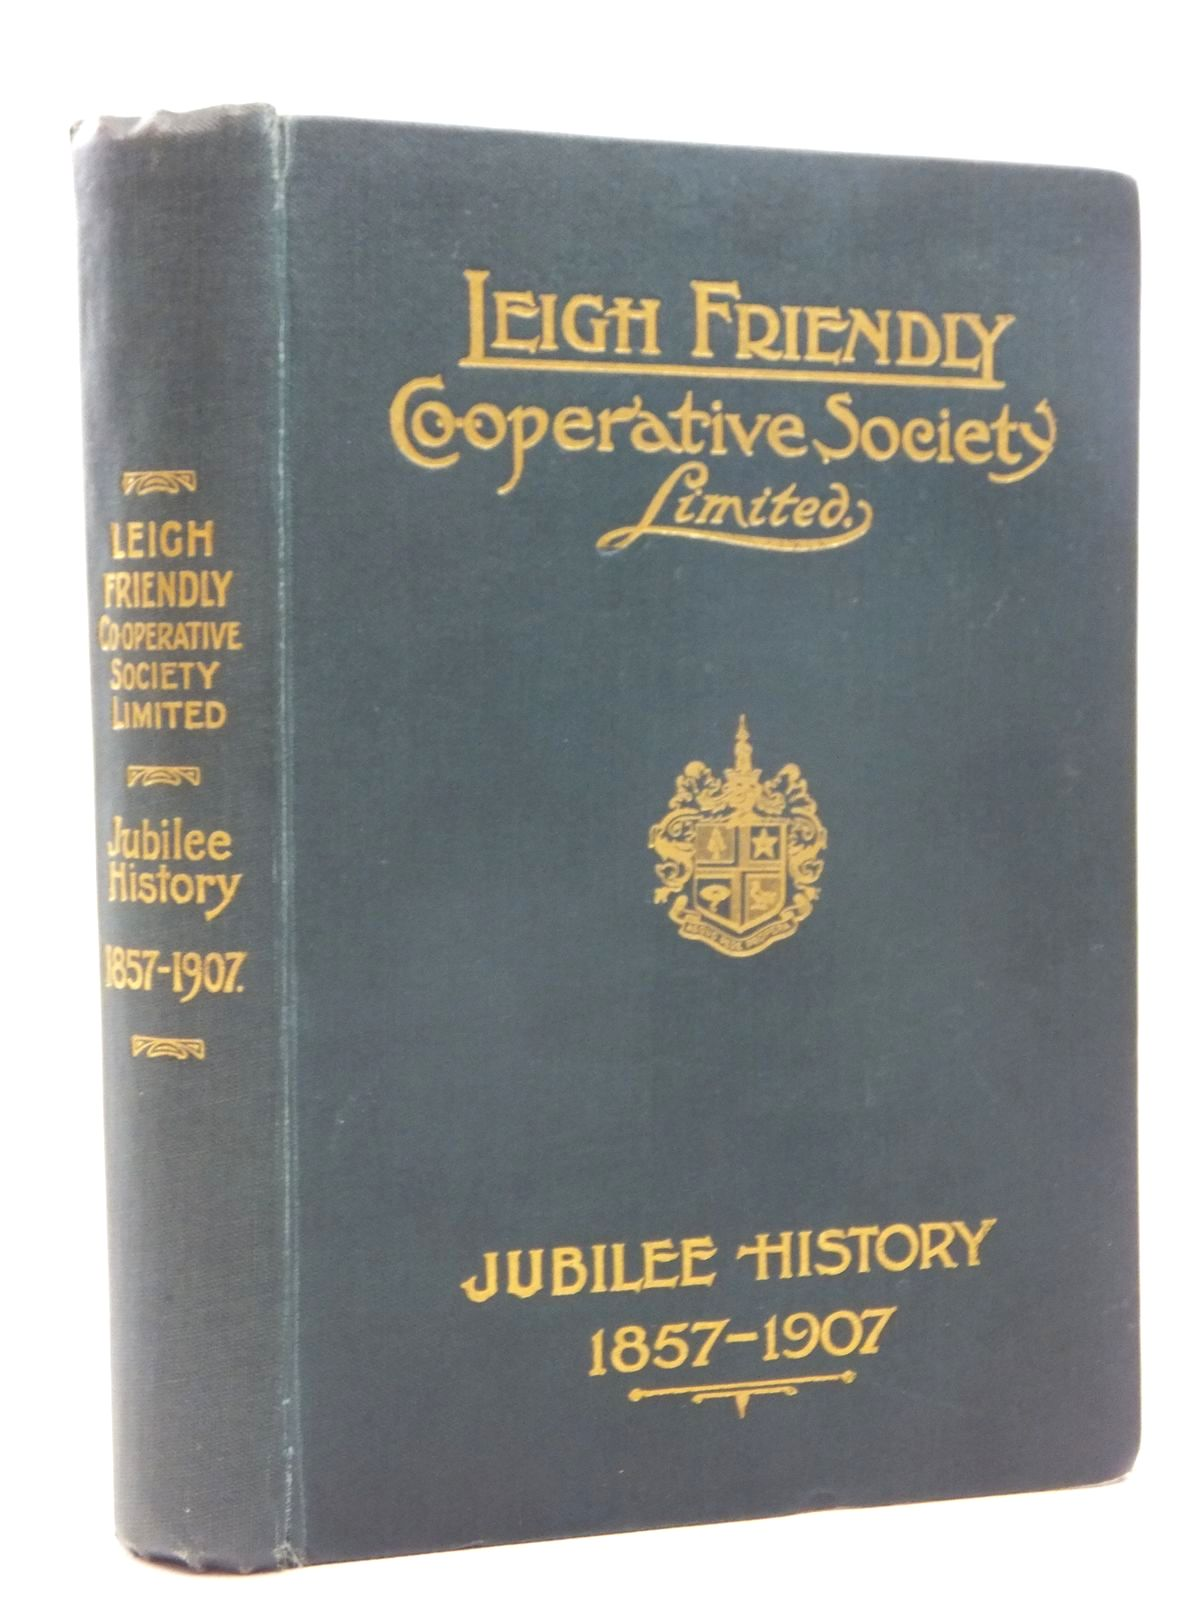 Photo of THE JUBILEE HISTORY OF THE LEIGH FRIENDLY CO-OPERATIVE SOCIETY LIMITED 1857-1907 written by Boydell, T. published by Co-Operative Printing Sociaty Limited (STOCK CODE: 1814831)  for sale by Stella & Rose's Books